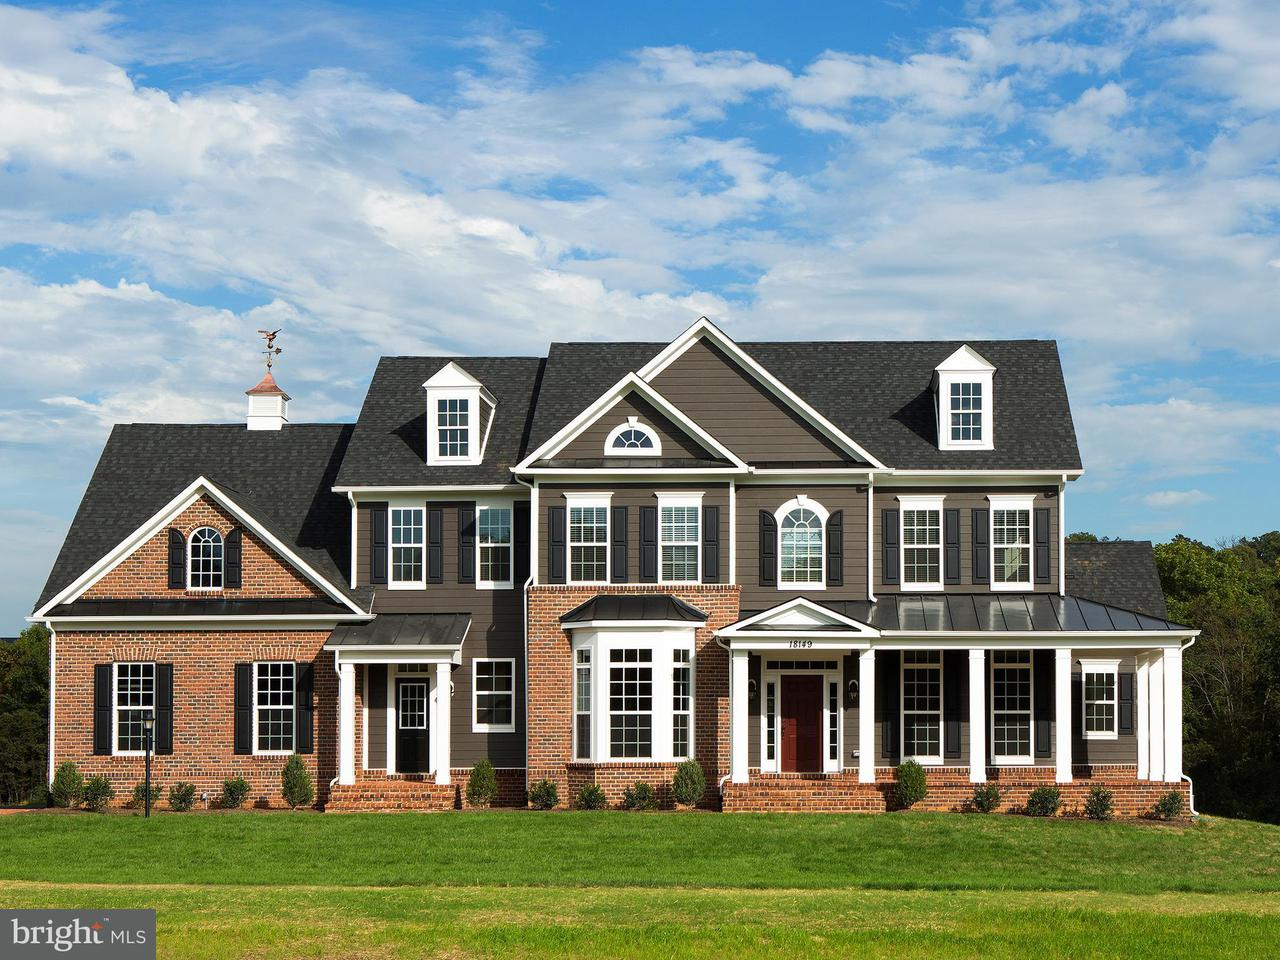 Single Family Home for Sale at WATERFORD CREST Place WATERFORD CREST Place Waterford, Virginia 20197 United States